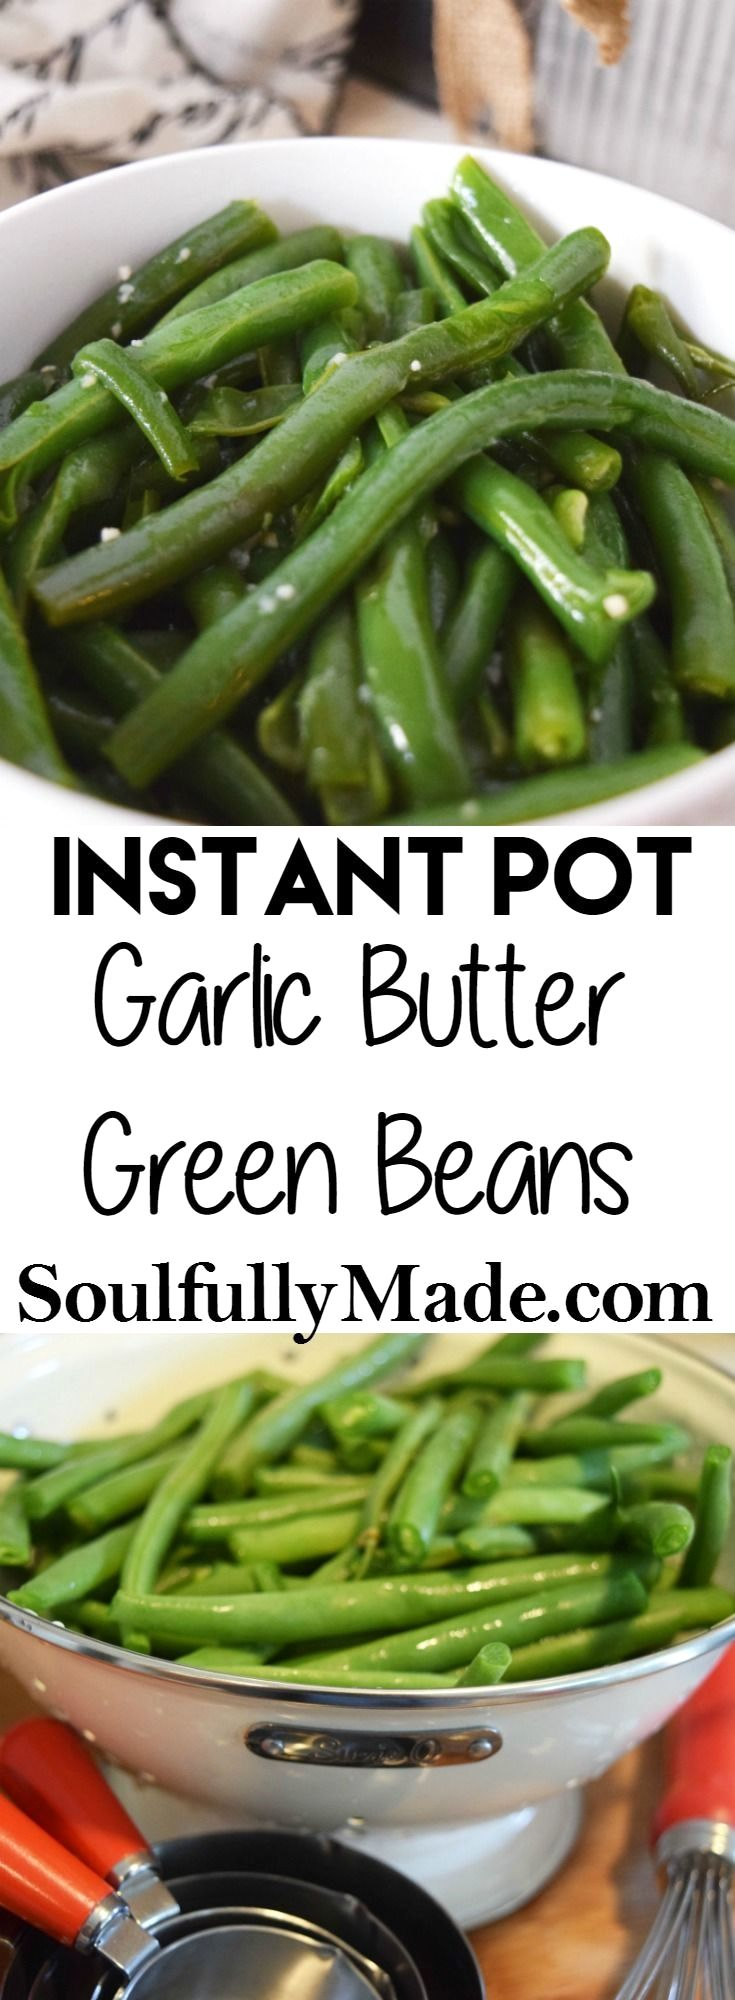 Instant Pot Garlic Butter Green Beans made in a flash! A perfect side for any dish! #instantpot #greenbeans